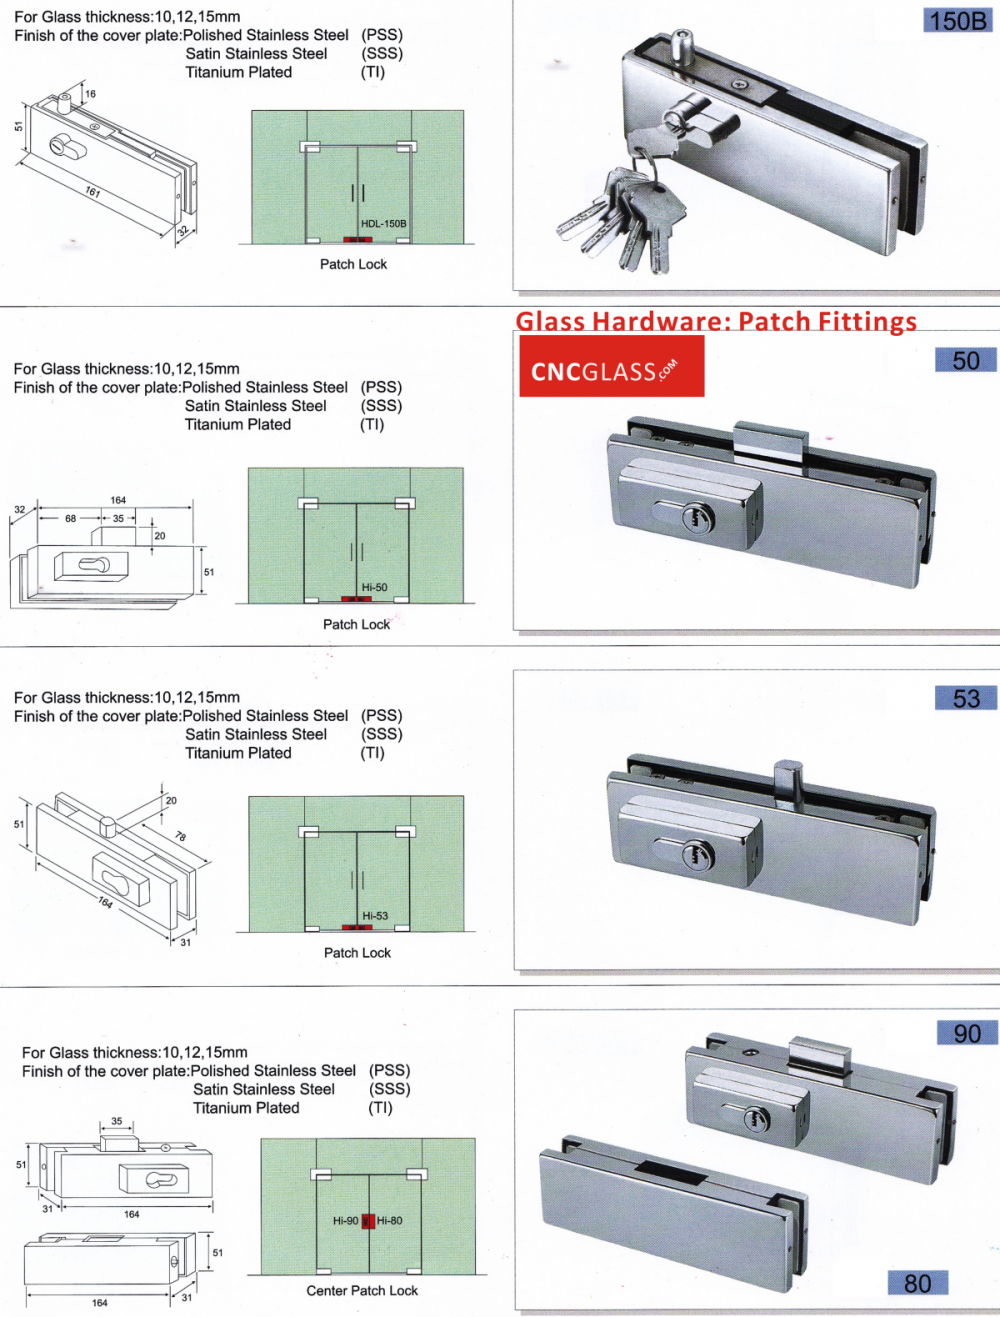 glass hardware patch fitting_conew2